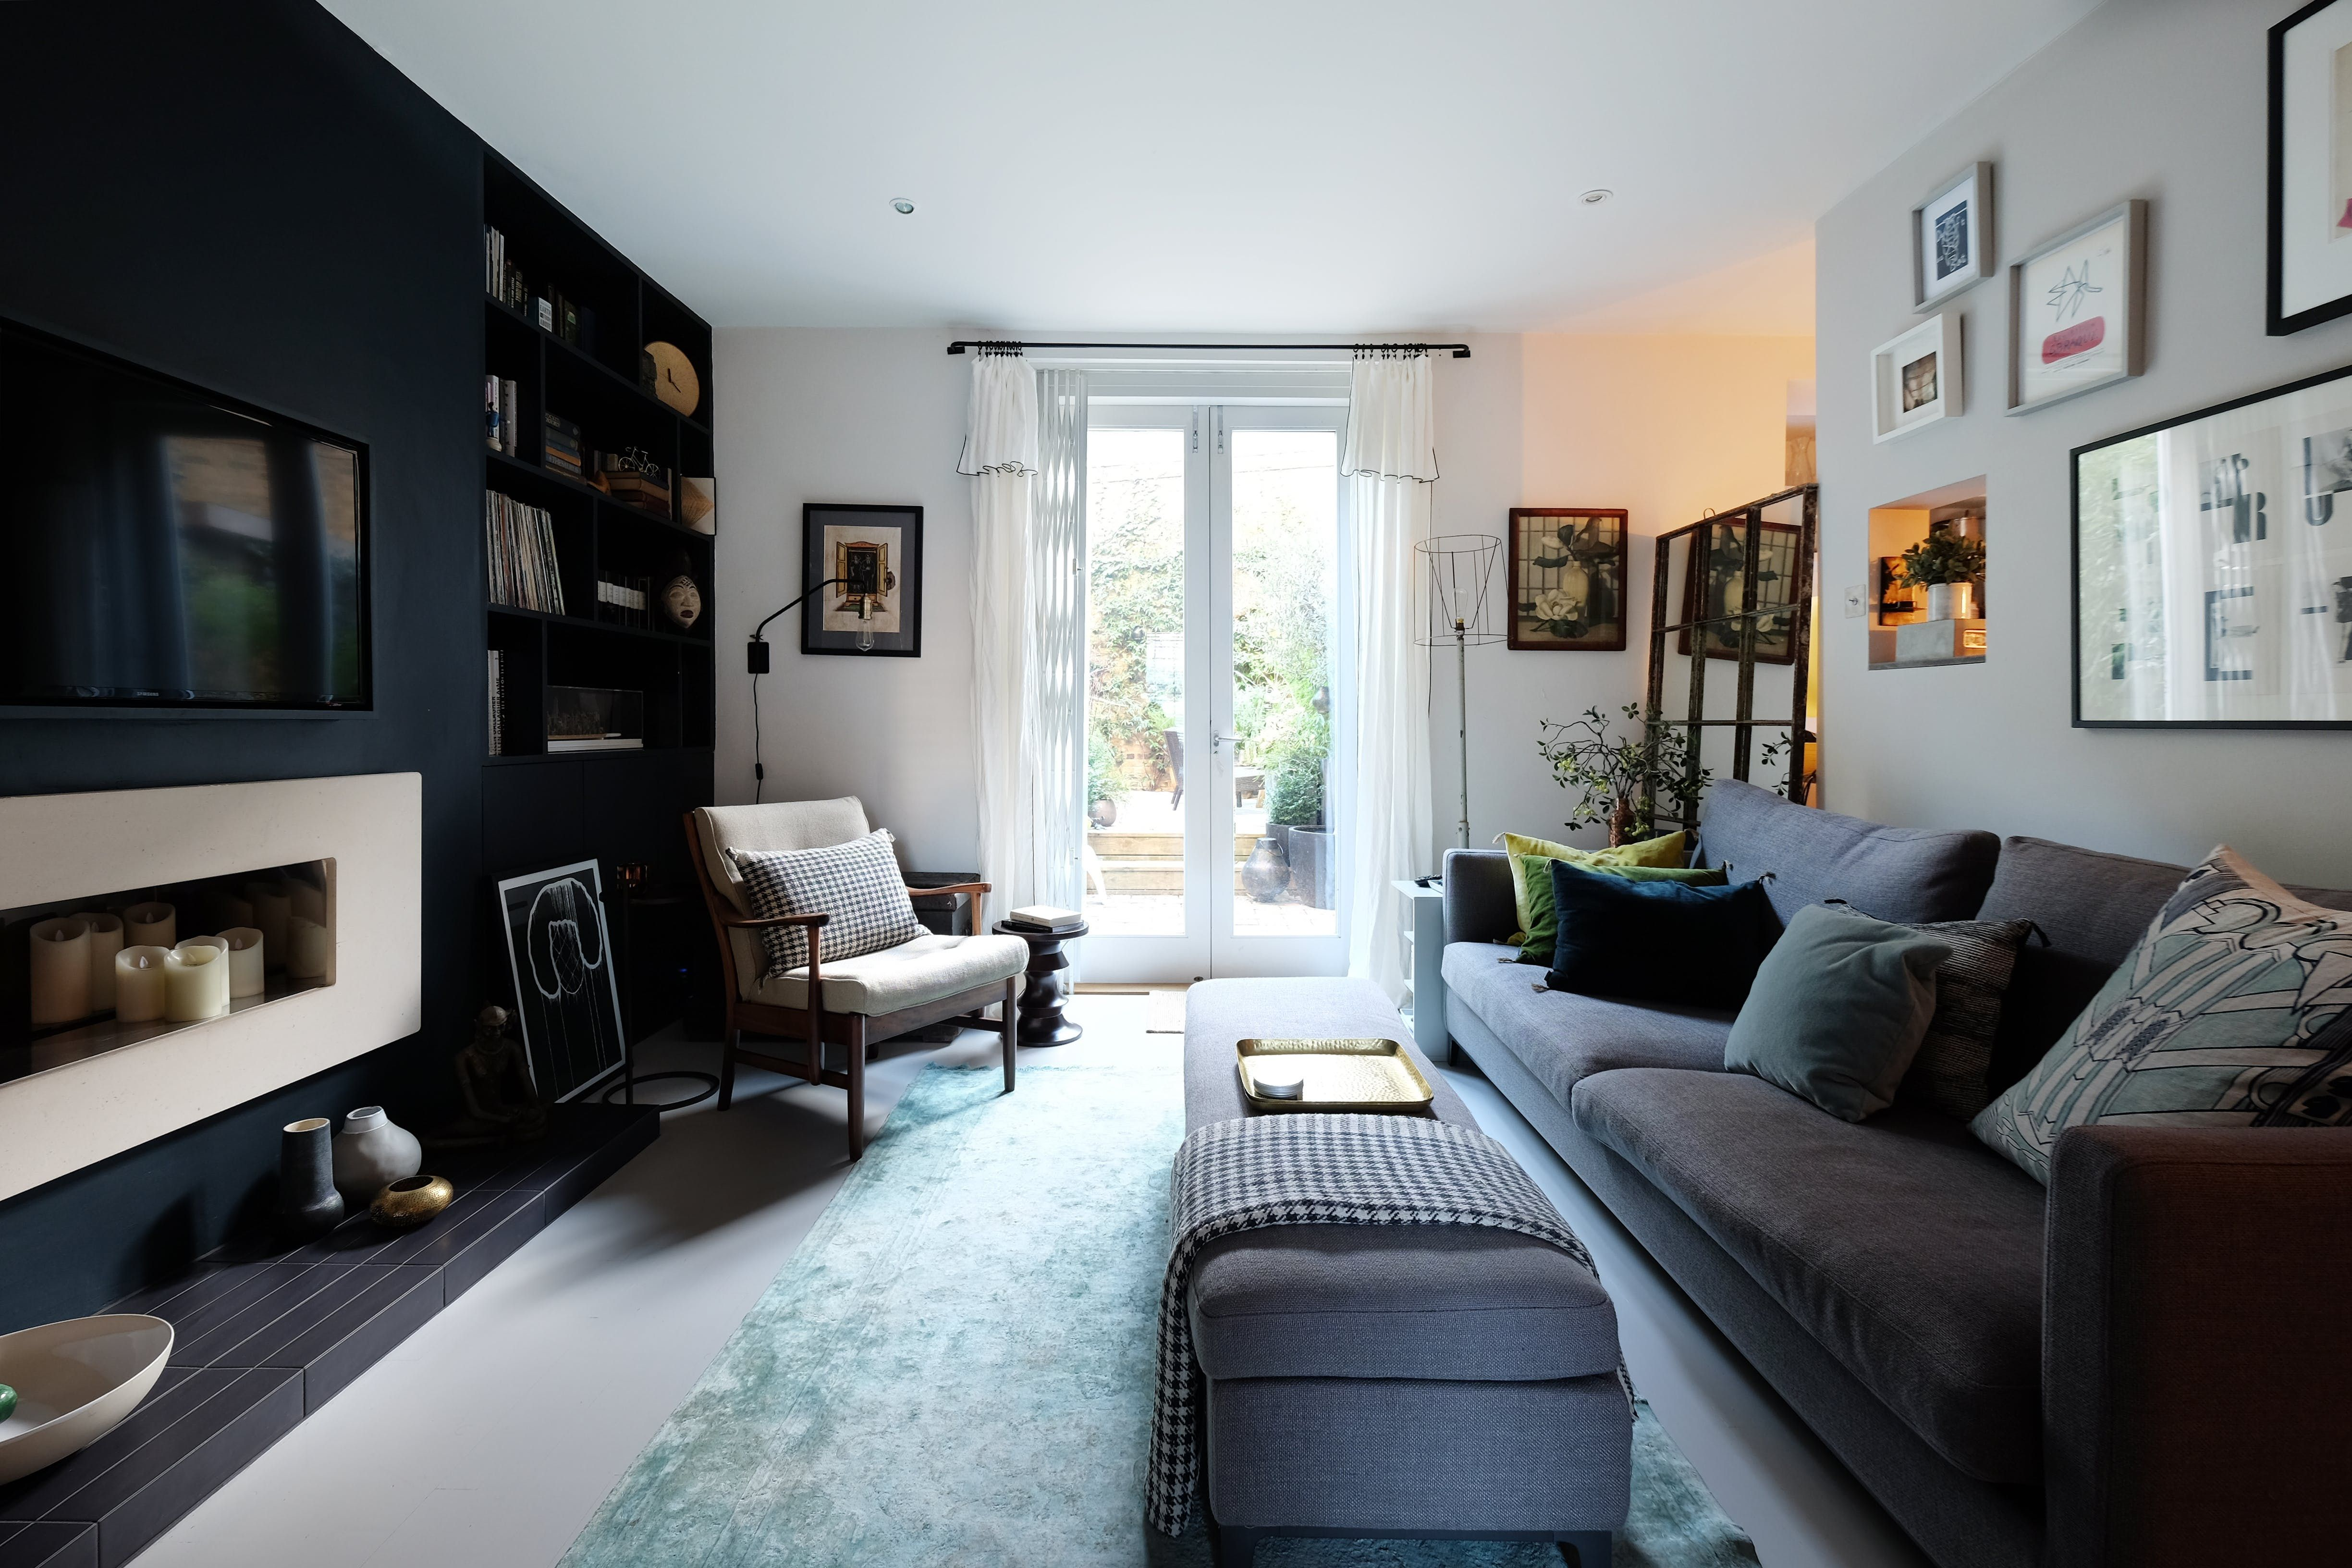 A Chic Small Space In The Heart Of London Camo Living Rooms Living Room Grey Home